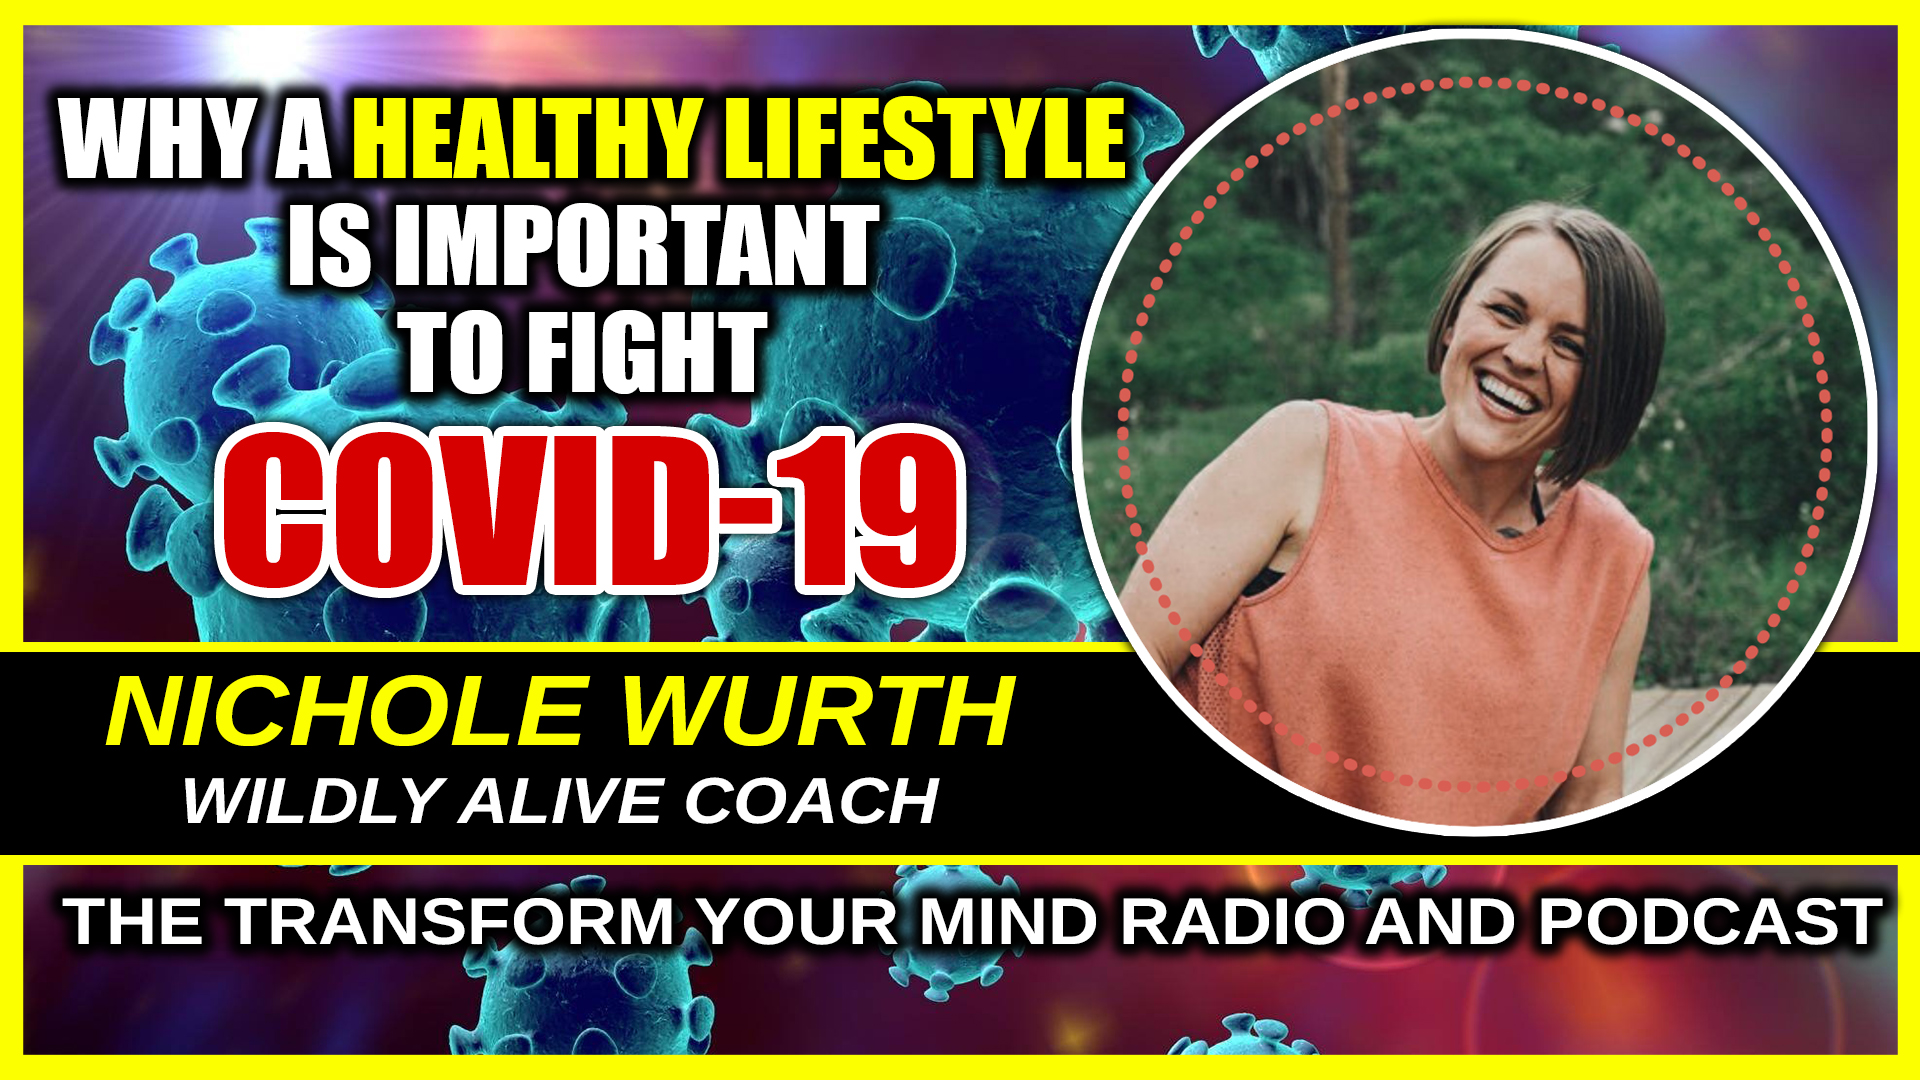 Have a Healthy Lifestyle During covid-19